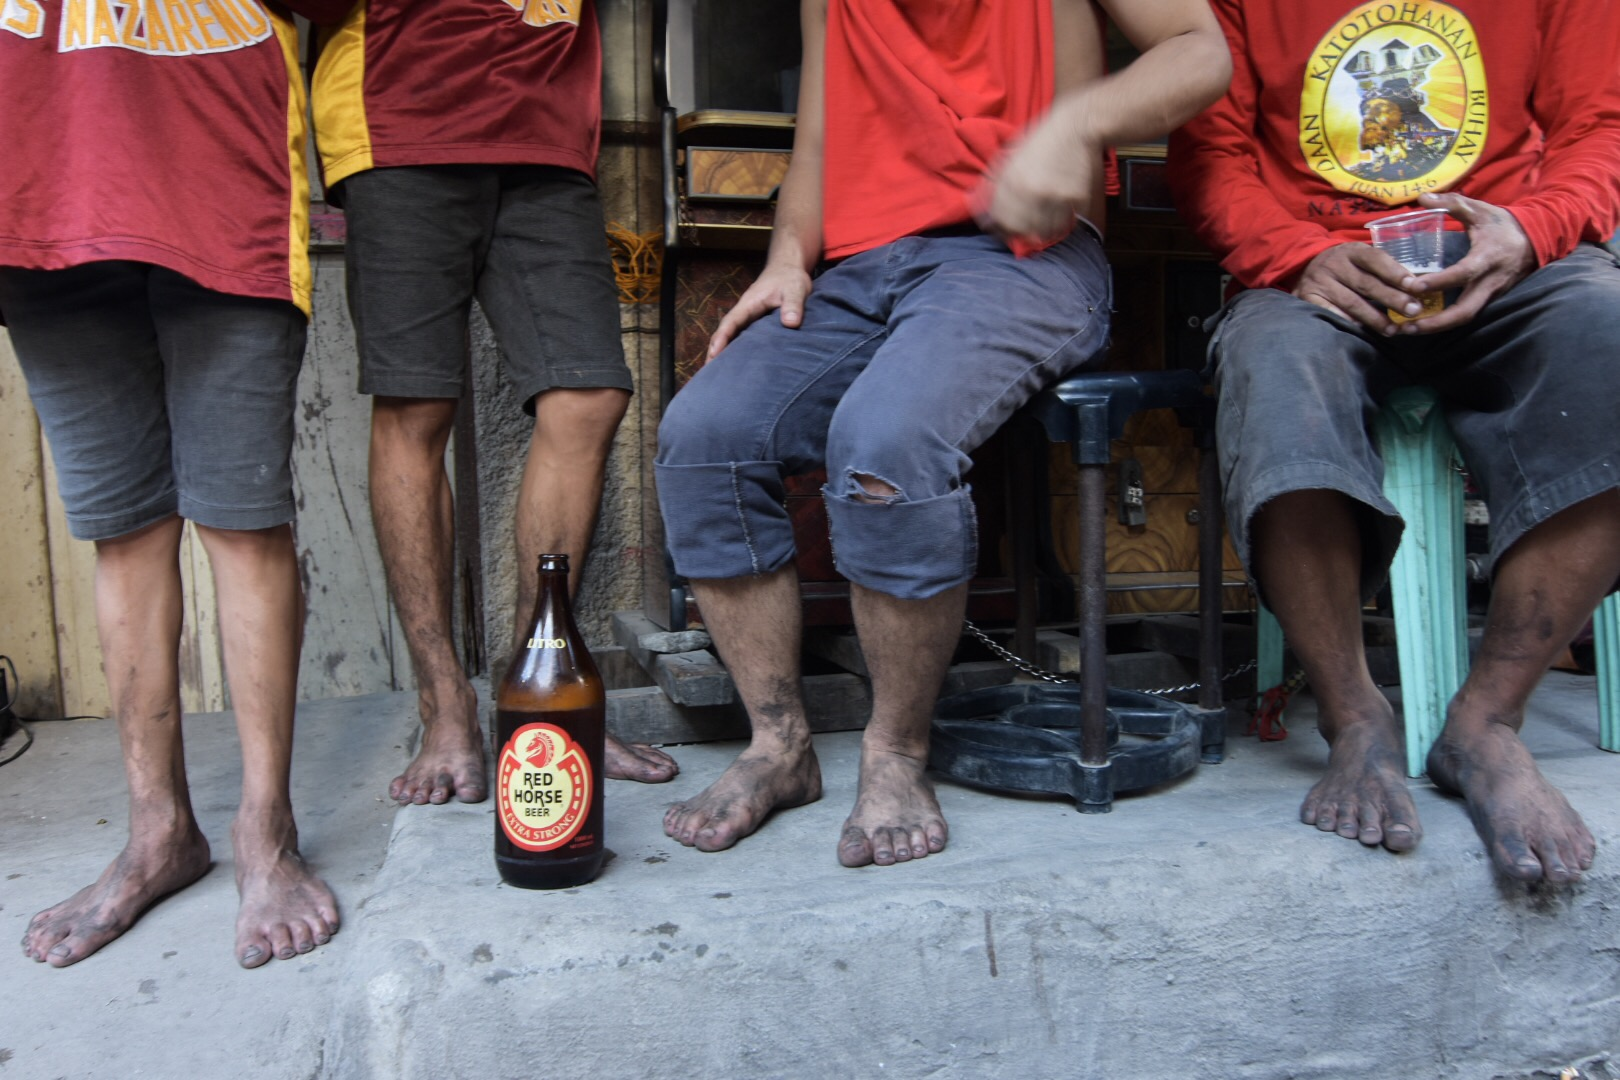 LIQUOR BAN? For residents a fiesta is not a fiesta without alcohol.